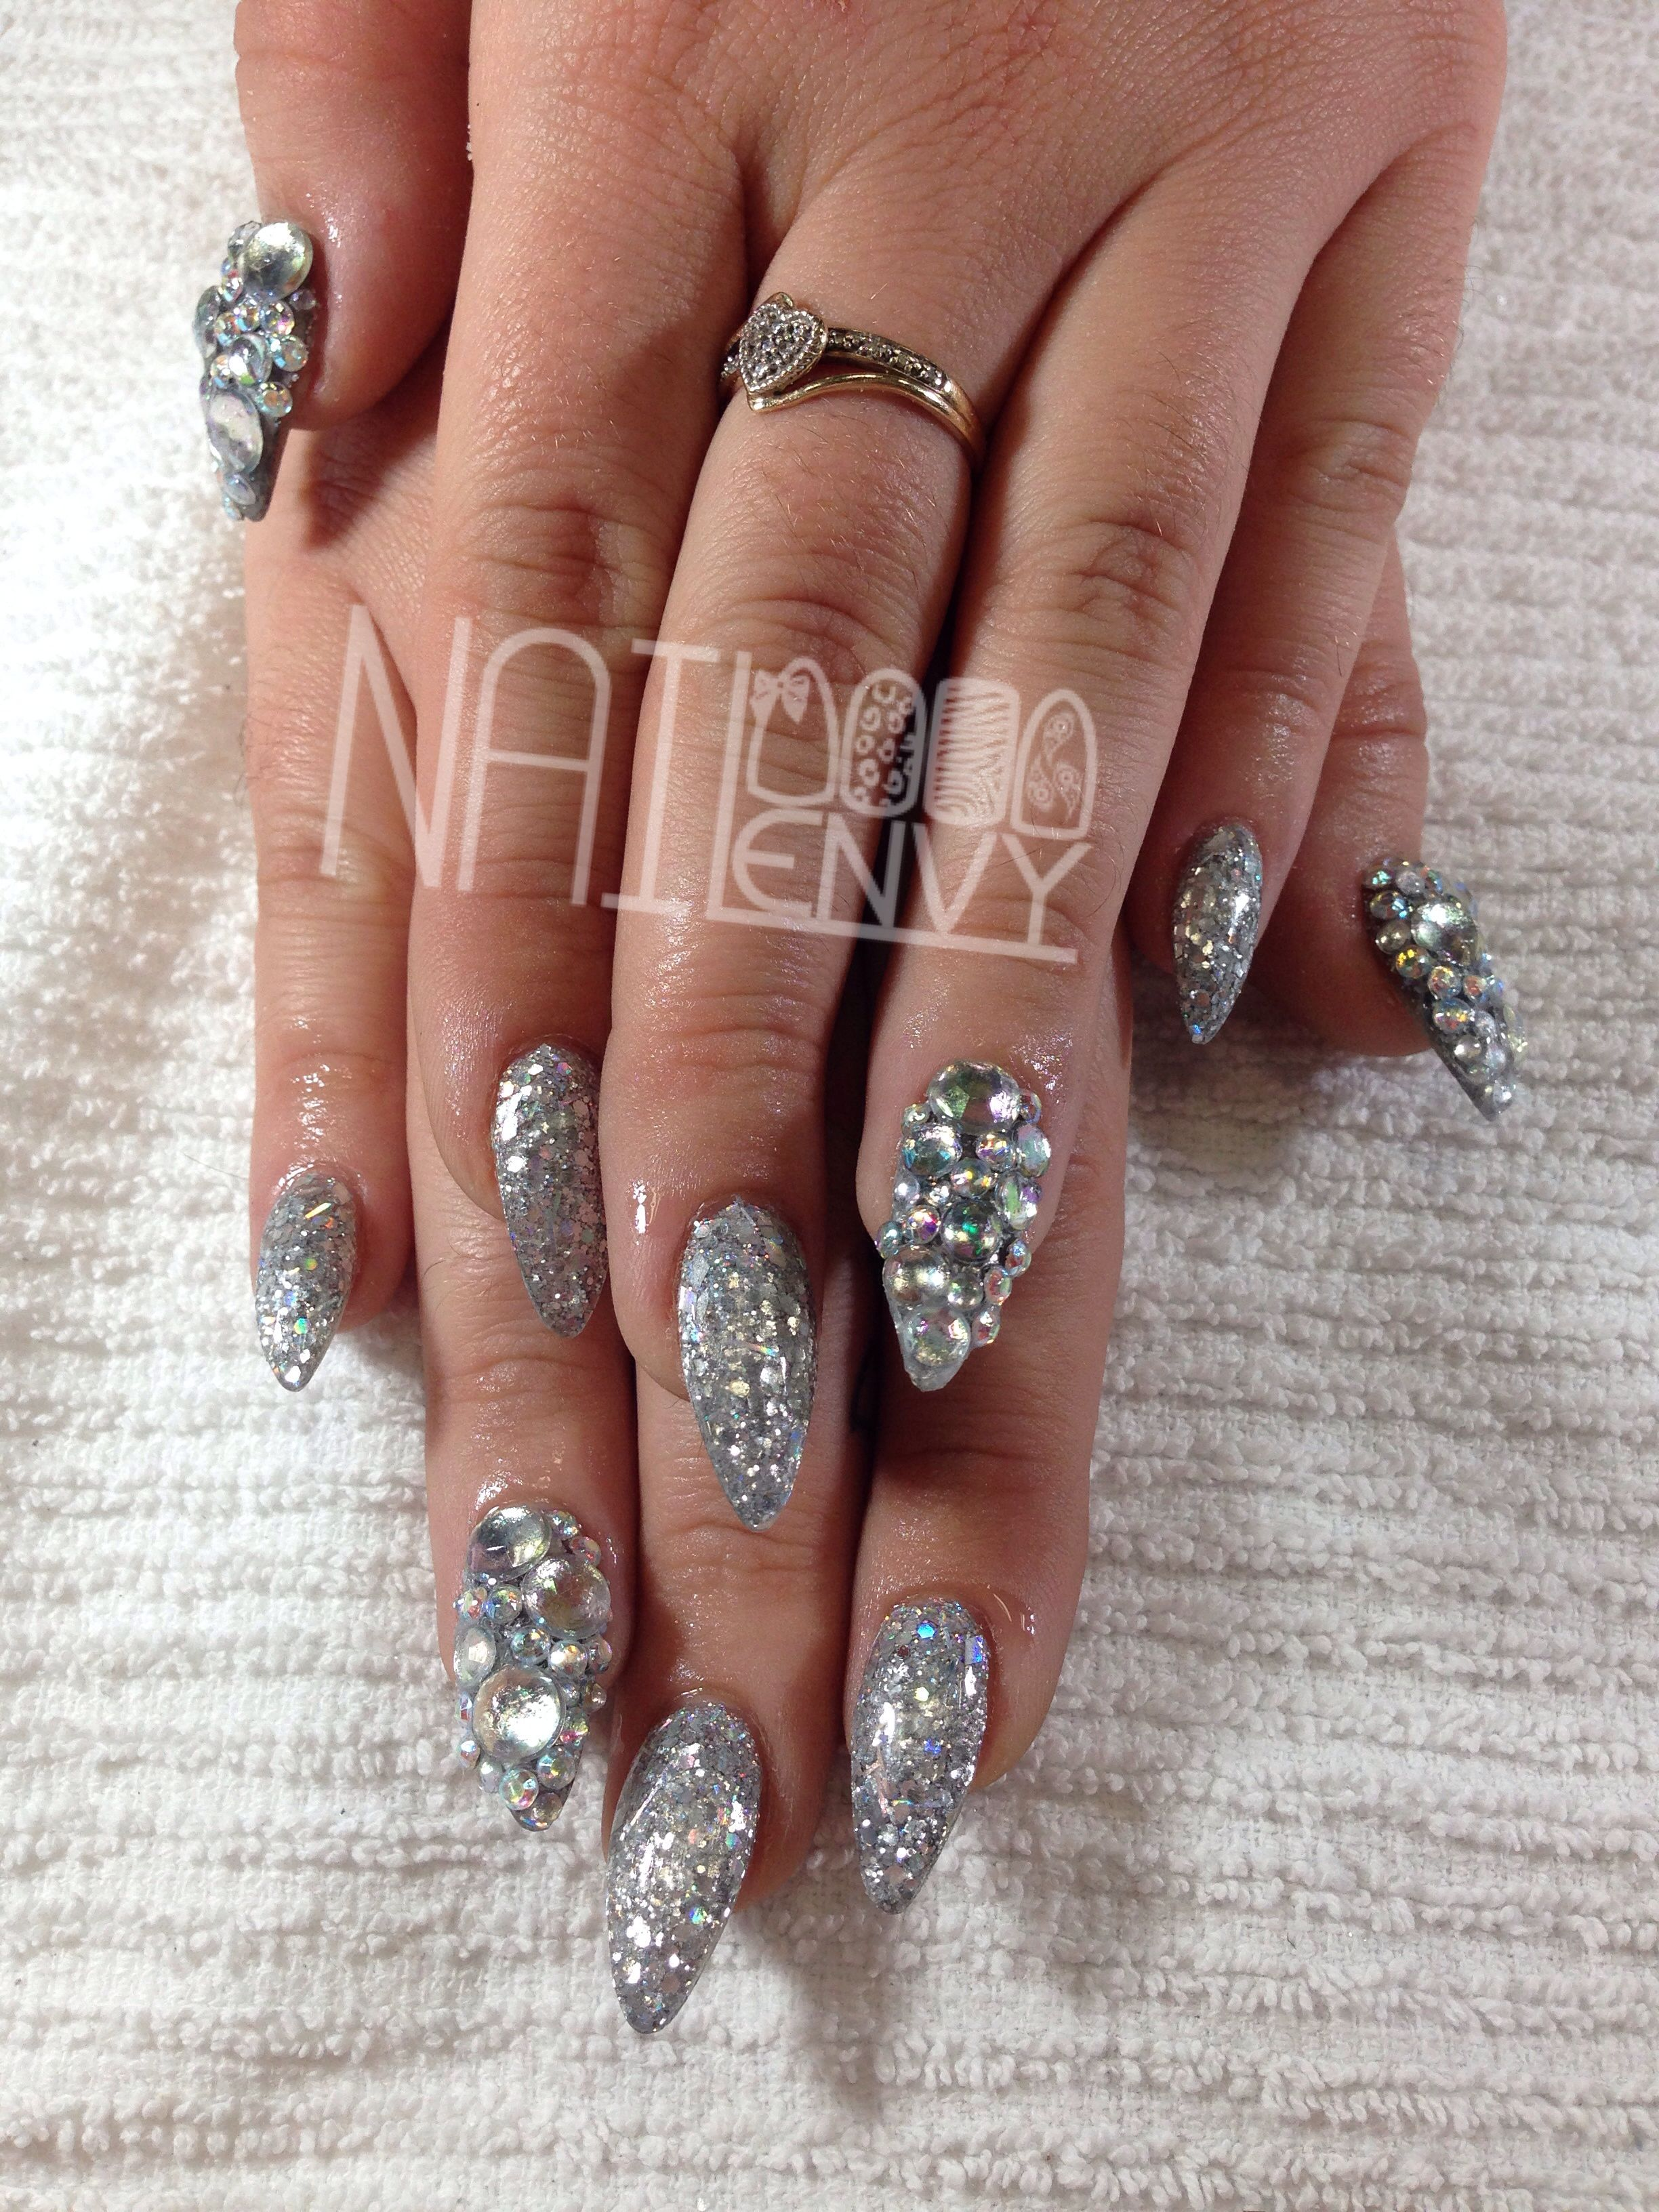 Silver Stiletto Nails! ️Pinterest: Jayde S.